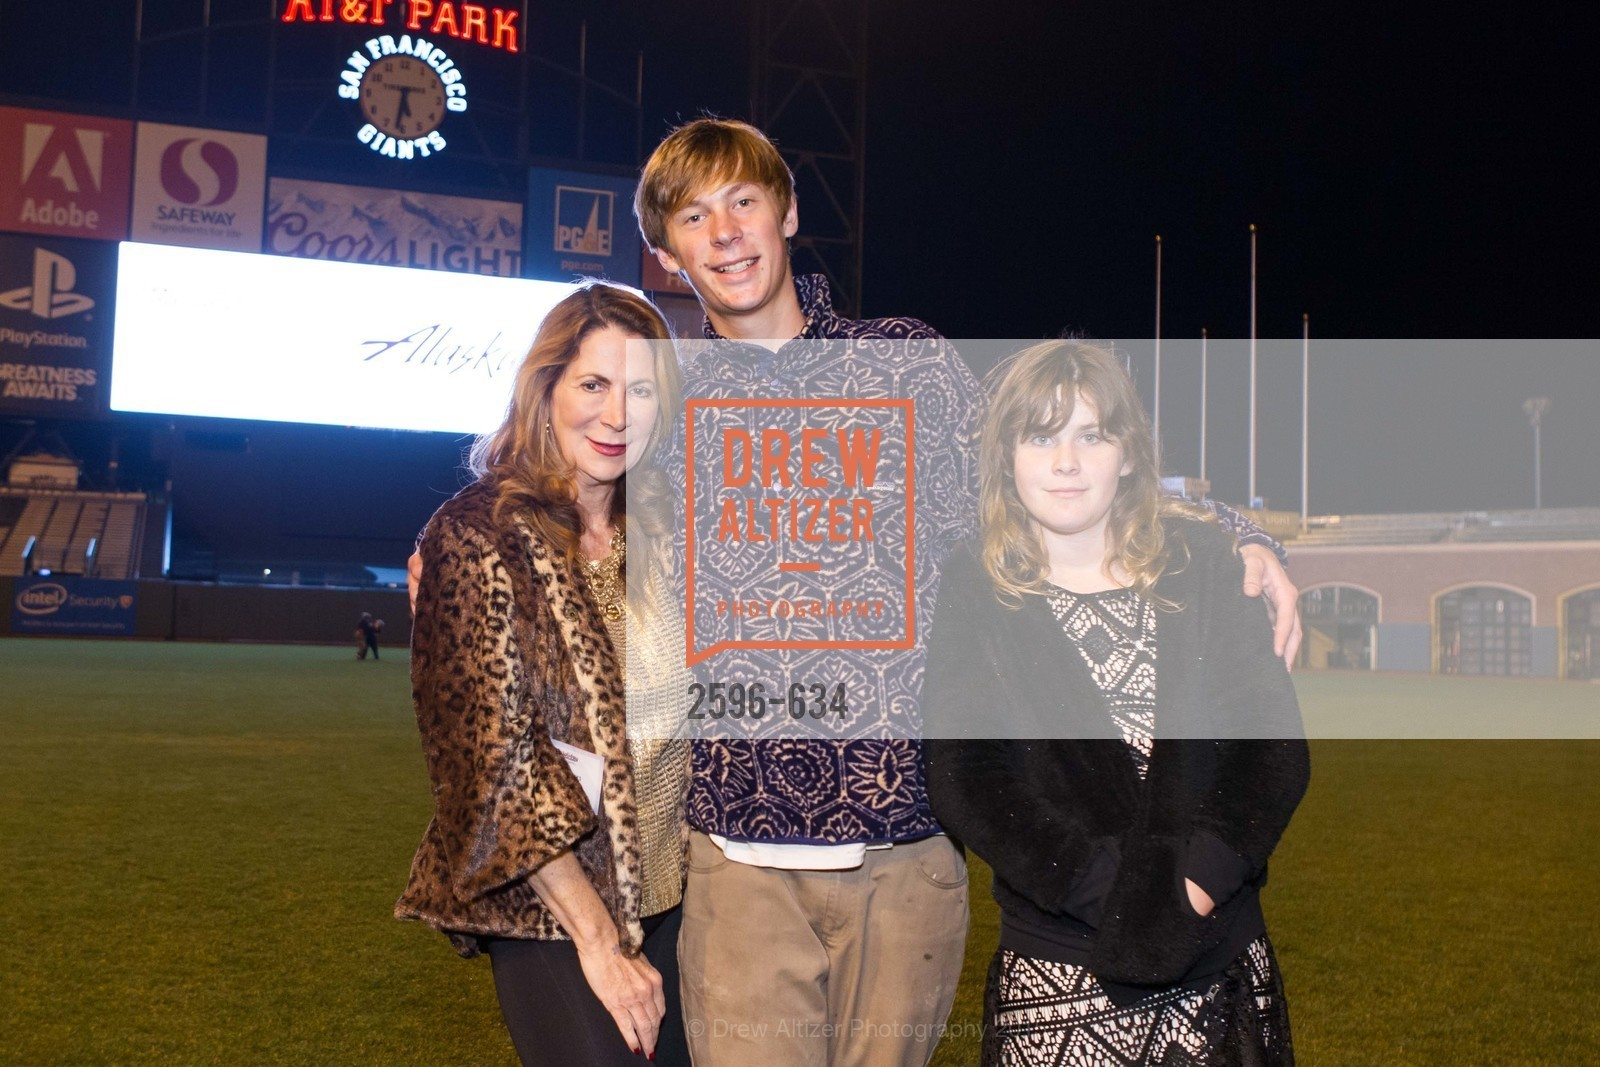 Patricia Ferrin Loucks, Chaz Loucks, Alexandra Loucks, Holiday Heroes 2015, AT&T Park, December 7th, 2015,Drew Altizer, Drew Altizer Photography, full-service agency, private events, San Francisco photographer, photographer california